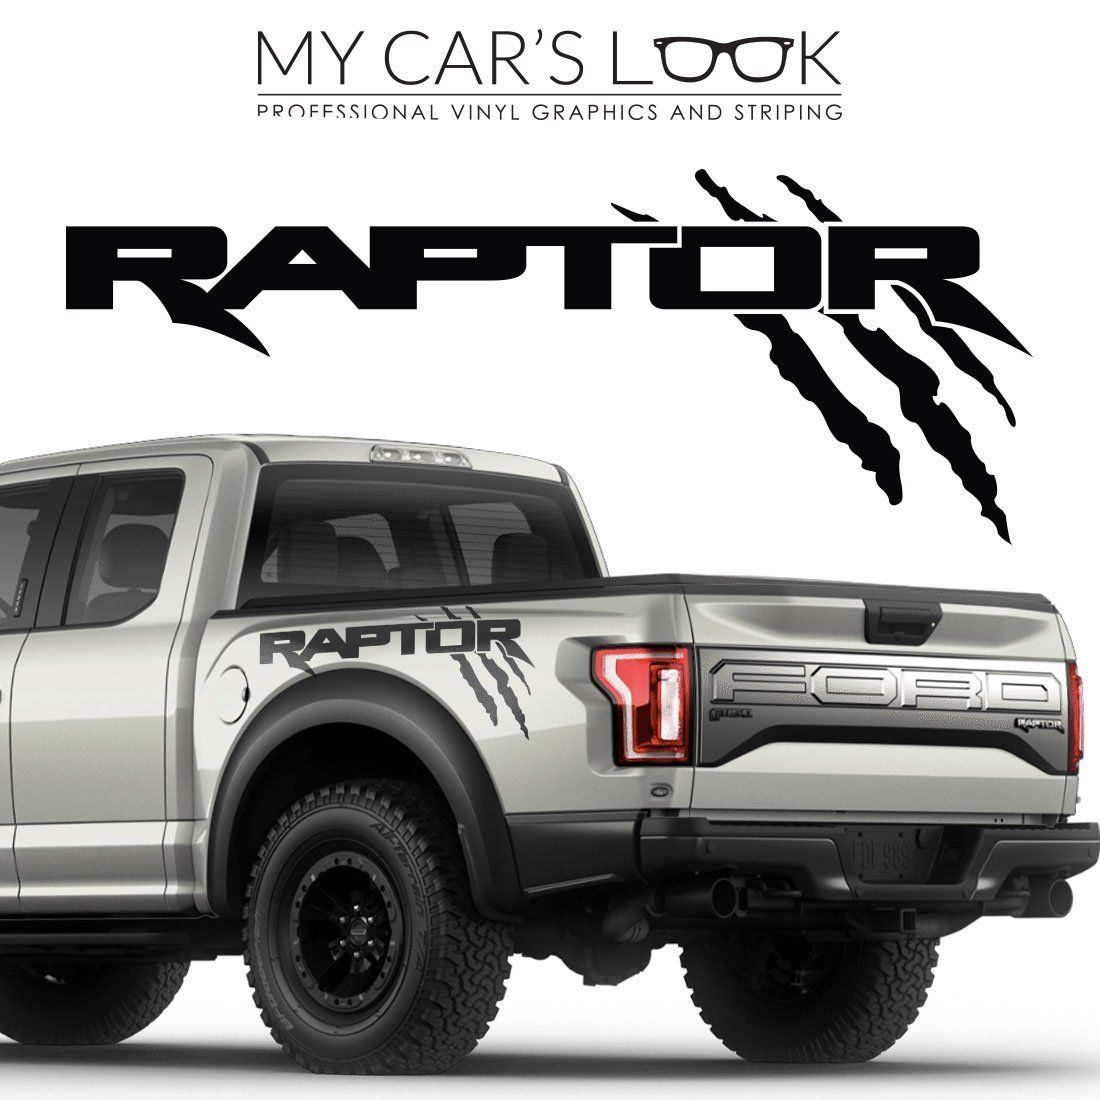 decal sticker raptor ford decals graphics exterior f150 svt kit vinyl stickers bedside cars automotive amazon stripes bumper included install